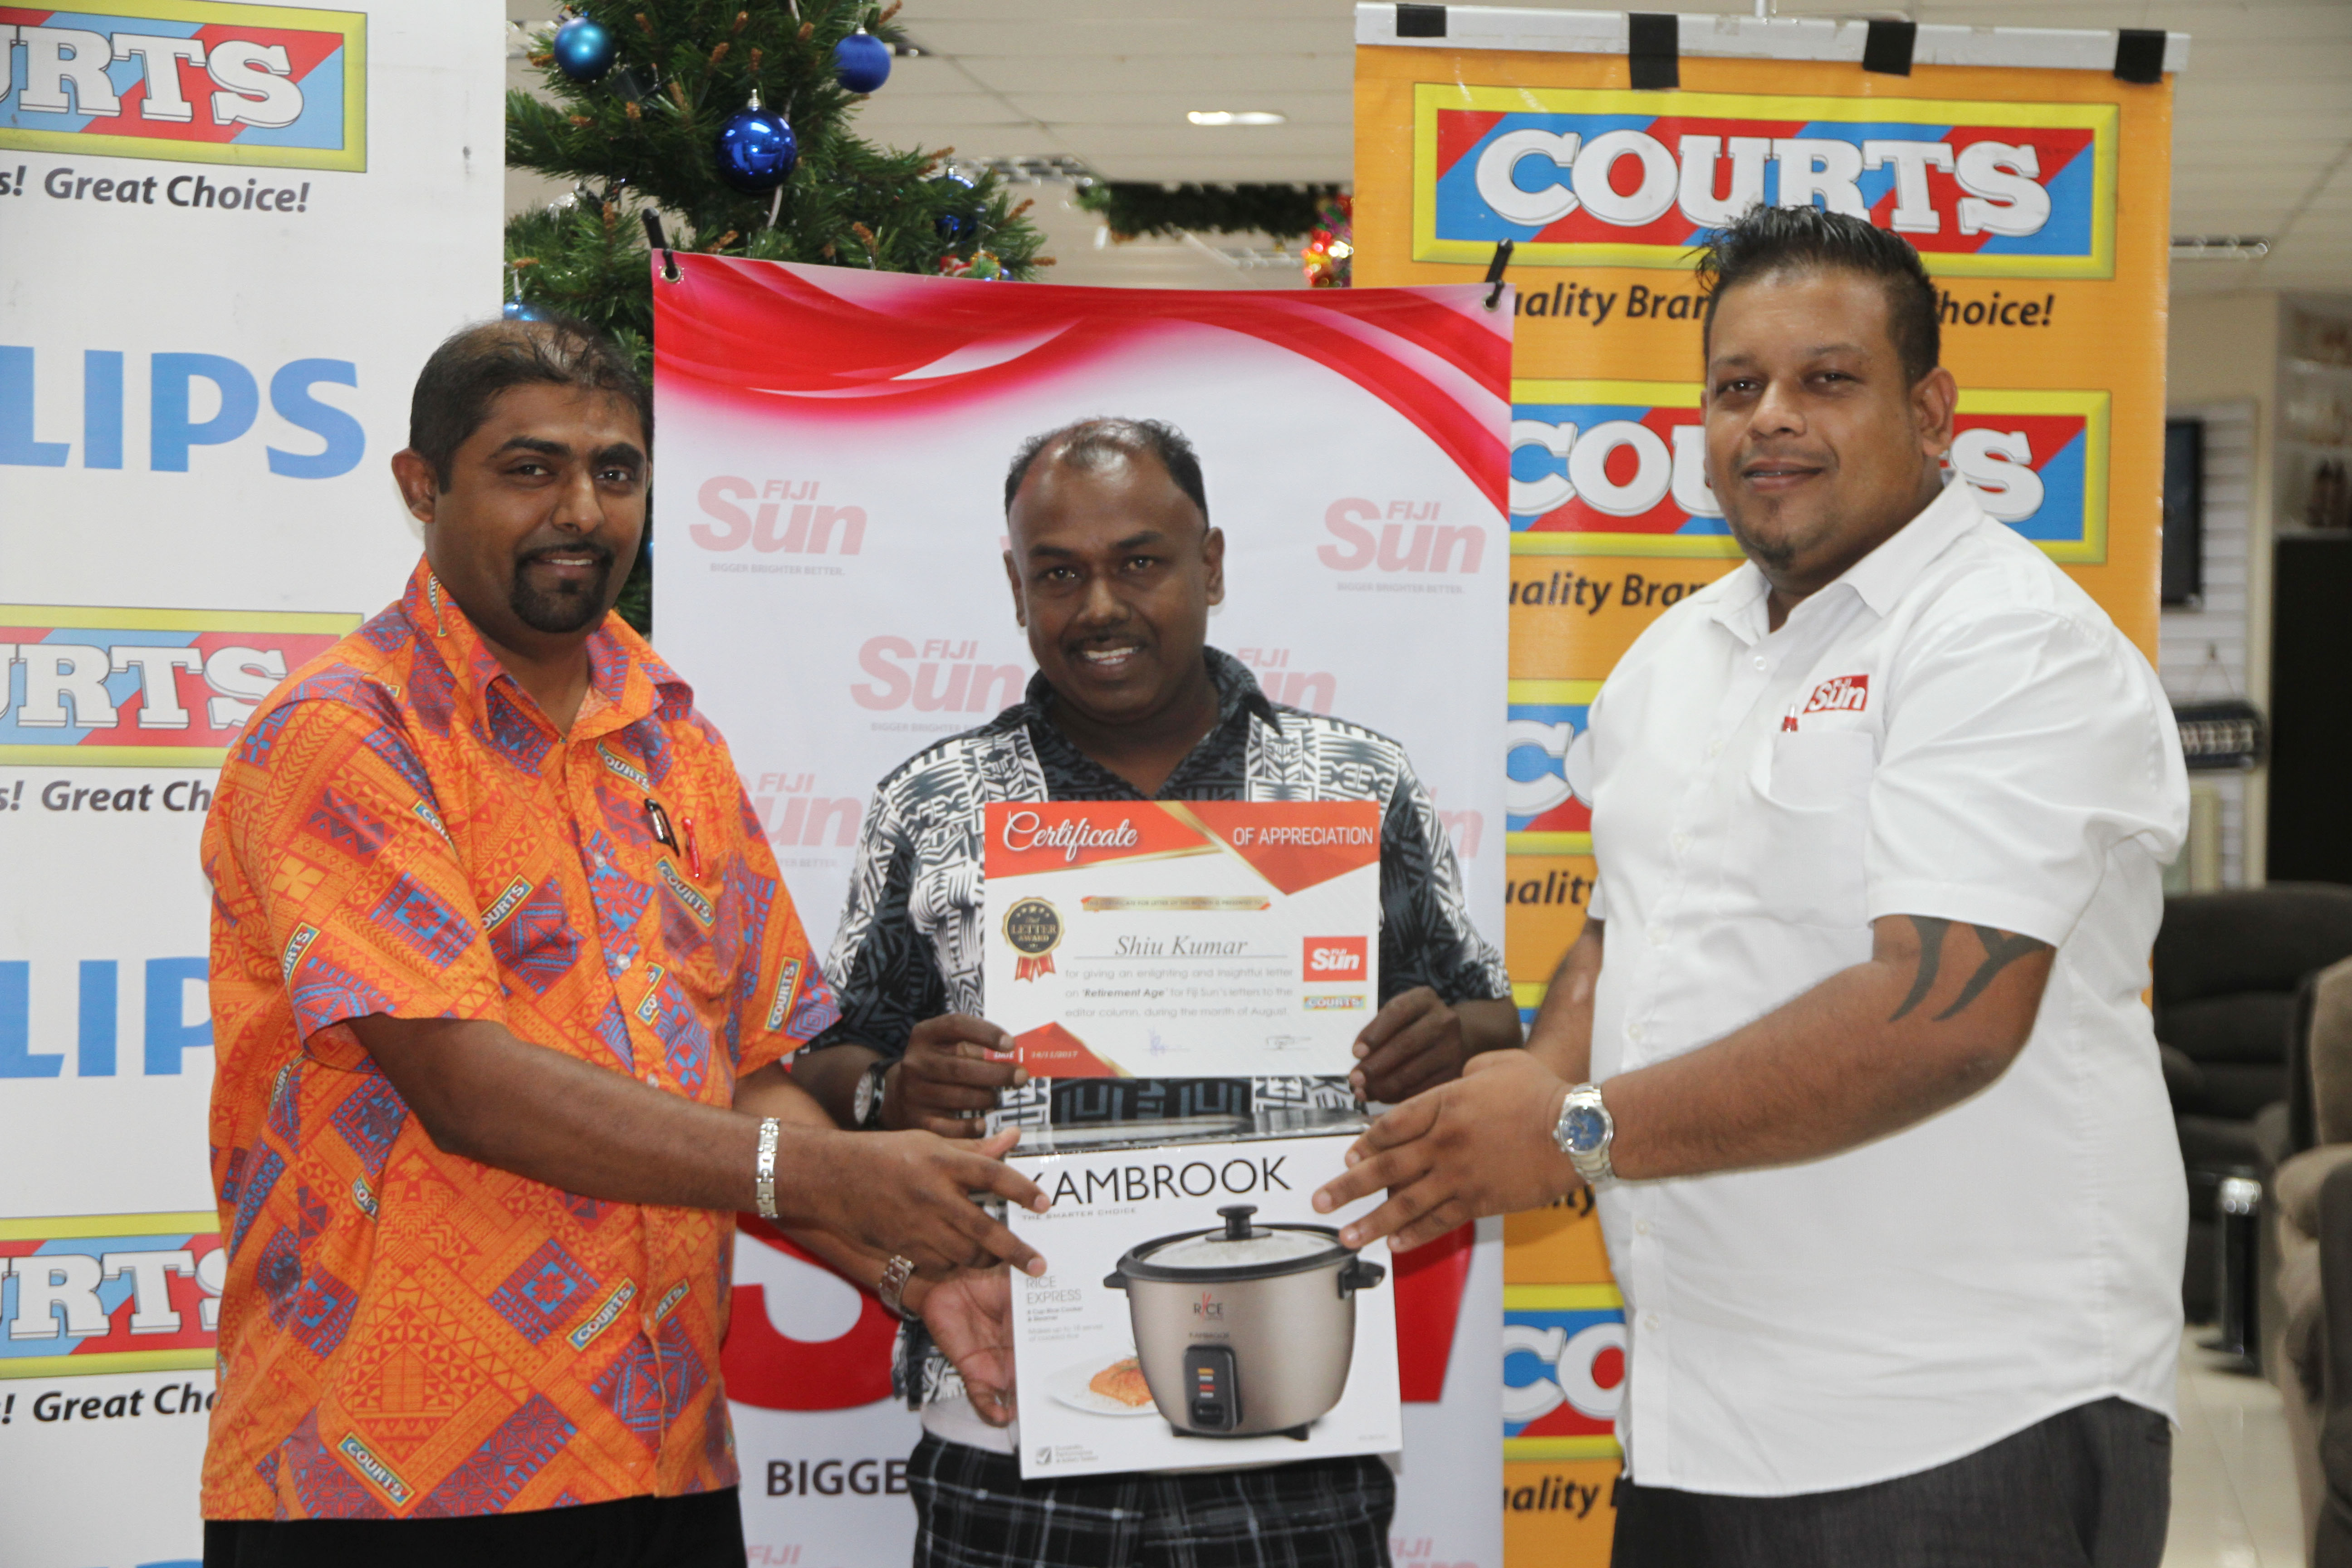 From left: Courts Retail Manager Benjamin Mohammed, Shiu Kumar and Fiji Sun marketing manager Rajiv Raj at the Courts Rodwell branch in Suva on December 12, 2017.  Photo: Wati Talebula